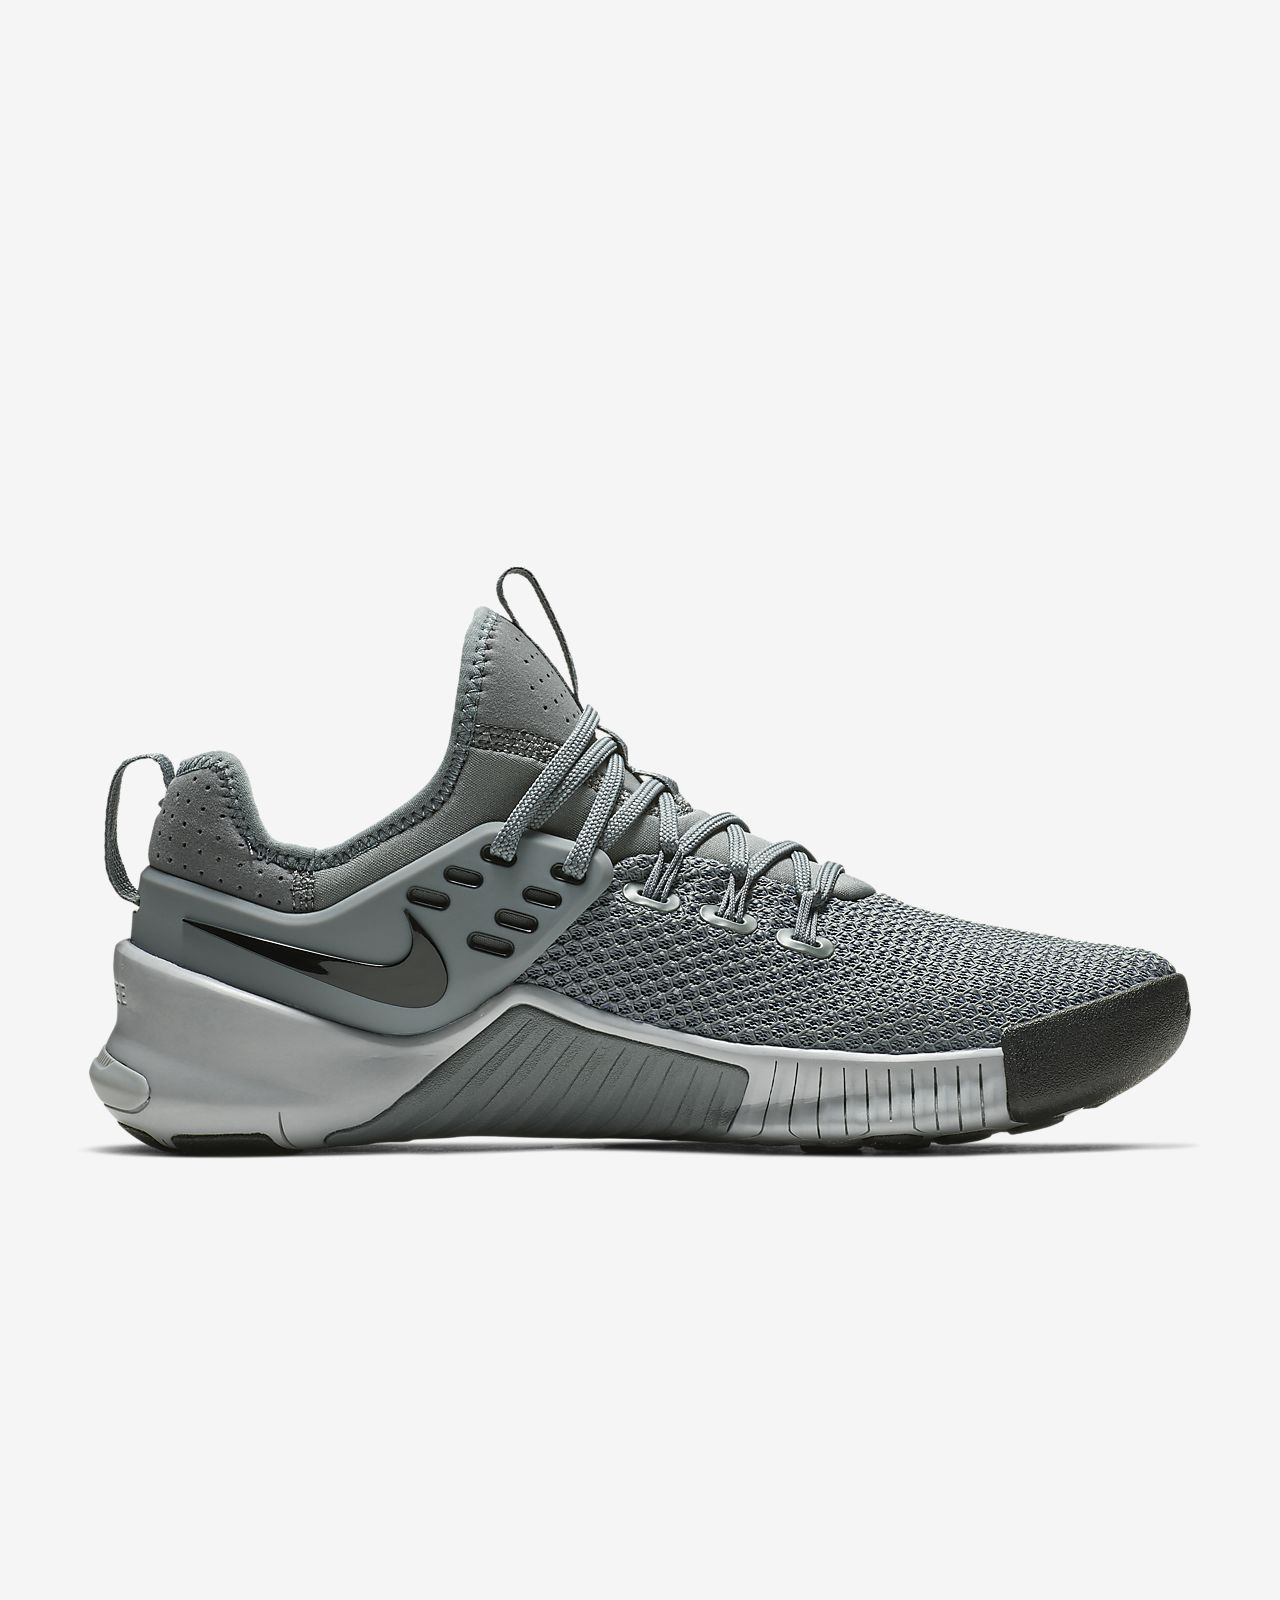 7456532eaa3 Nike Free x Metcon Cross Training Weightlifting Shoe. Nike.com